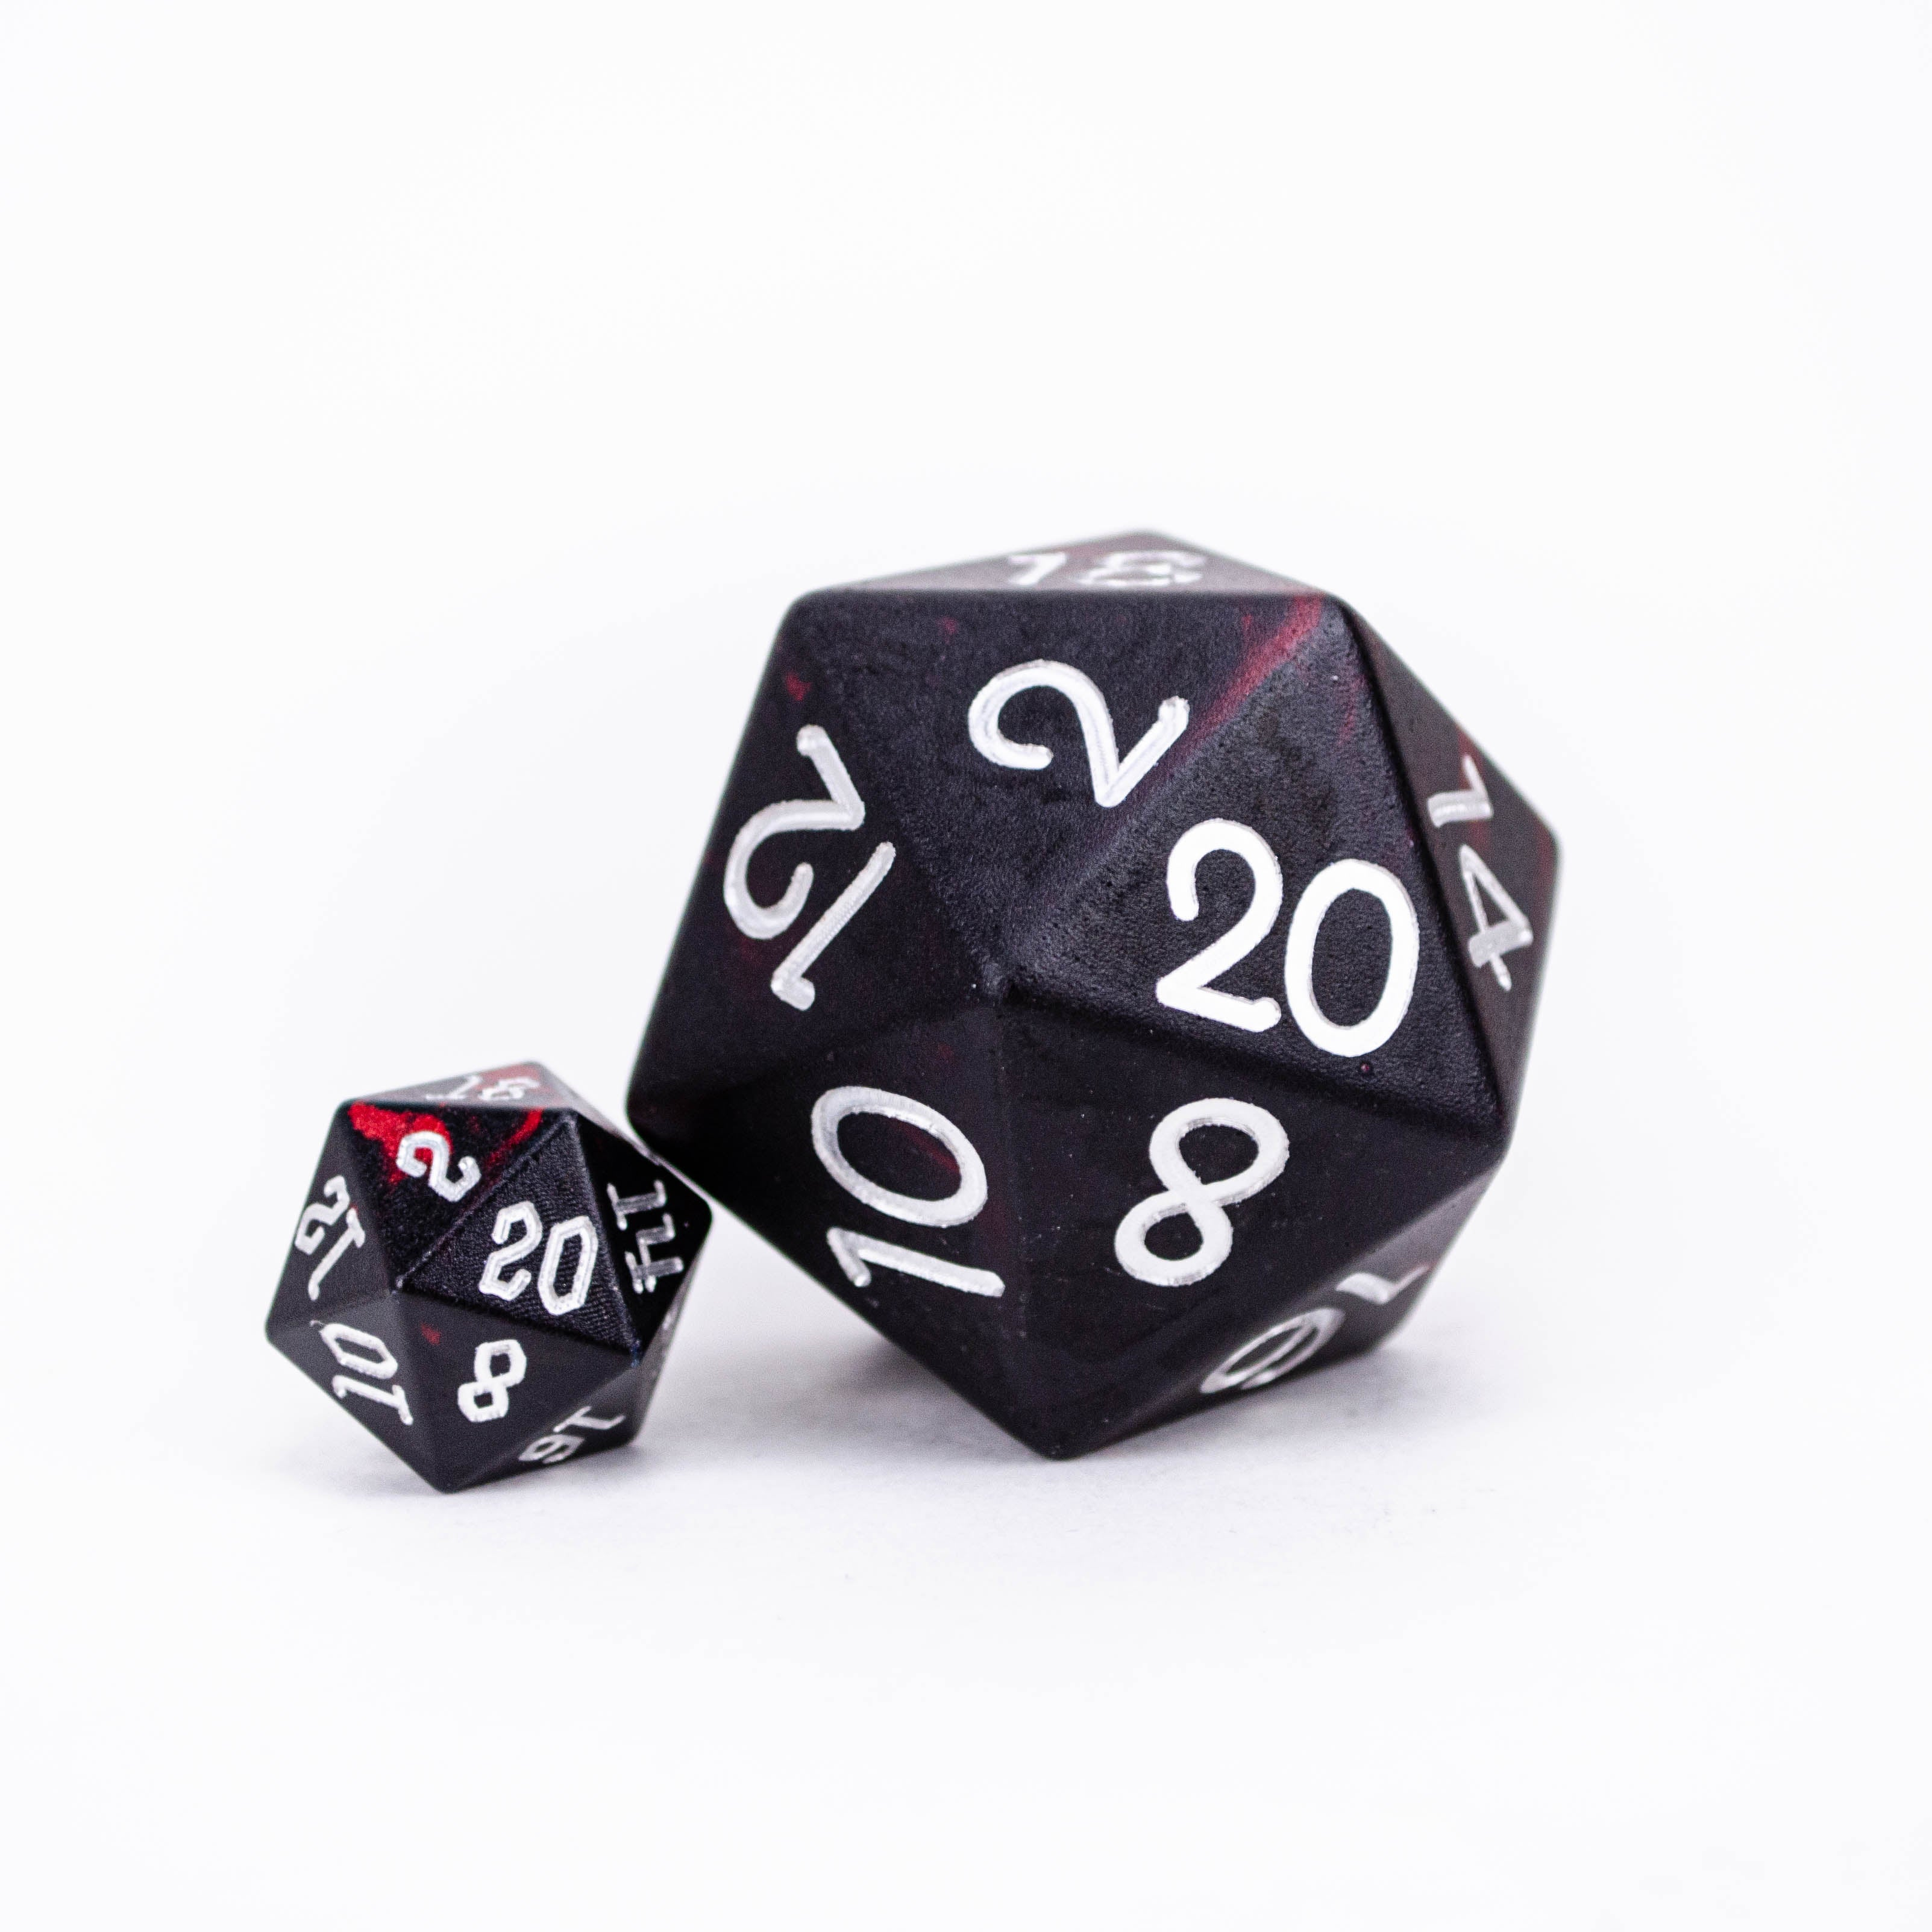 Siith D20 45mm